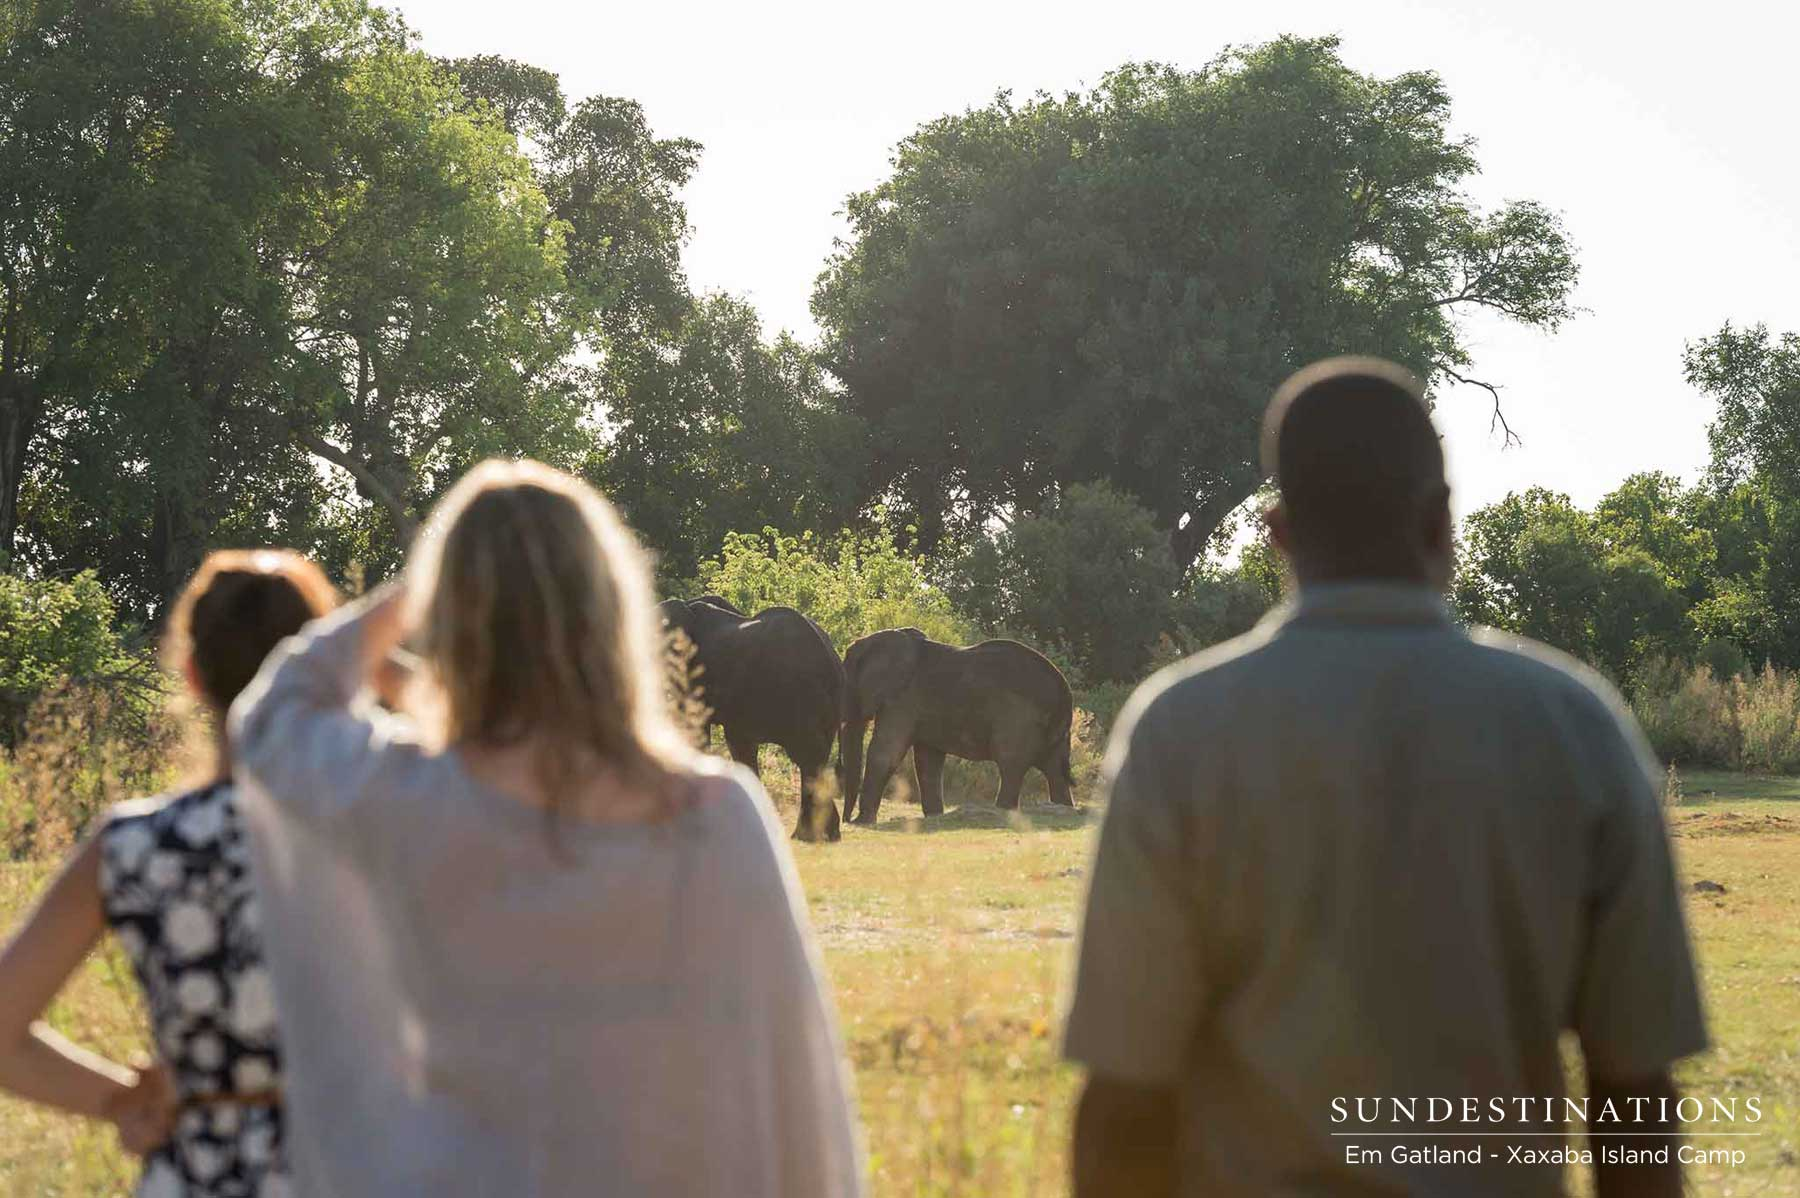 Safari Adventure Activities at Xaxaba Island Camp